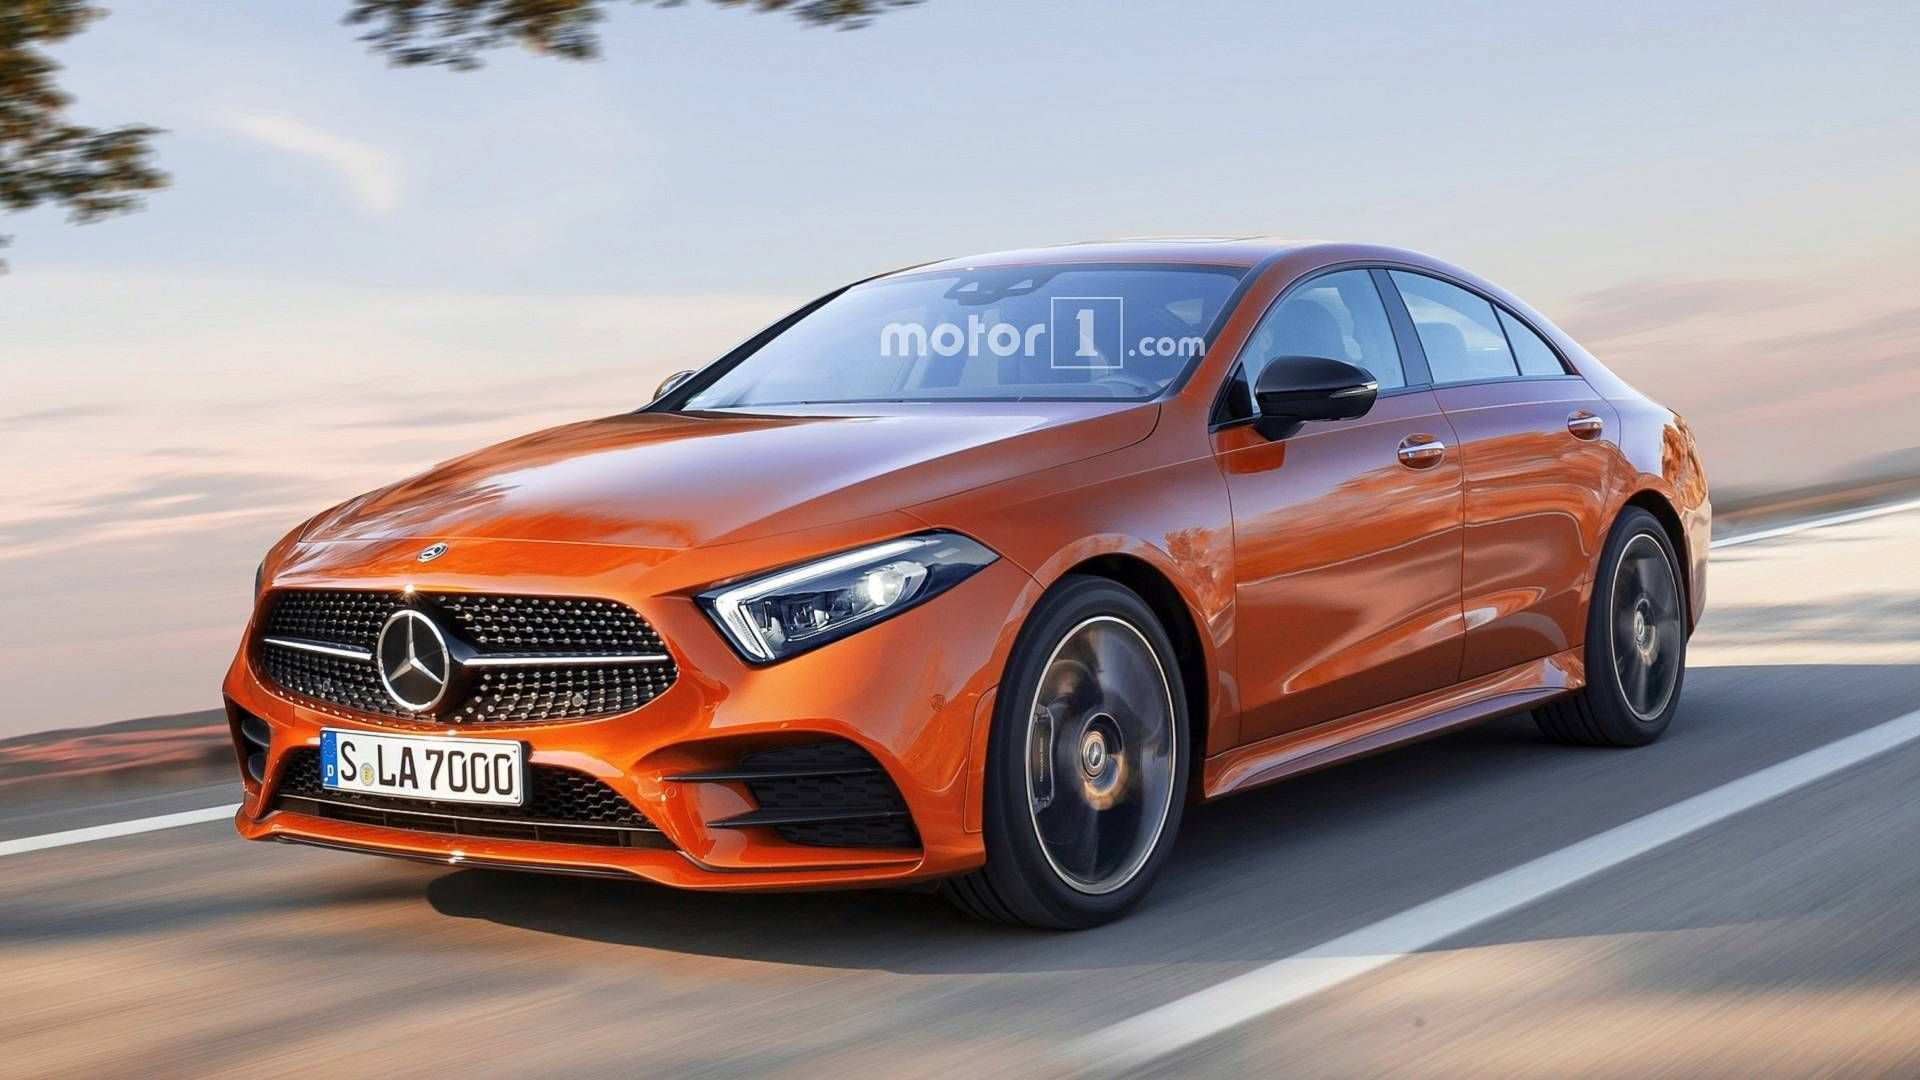 68 Gallery of Mercedes Cla 2020 Exterior Date Redesign with Mercedes Cla 2020 Exterior Date